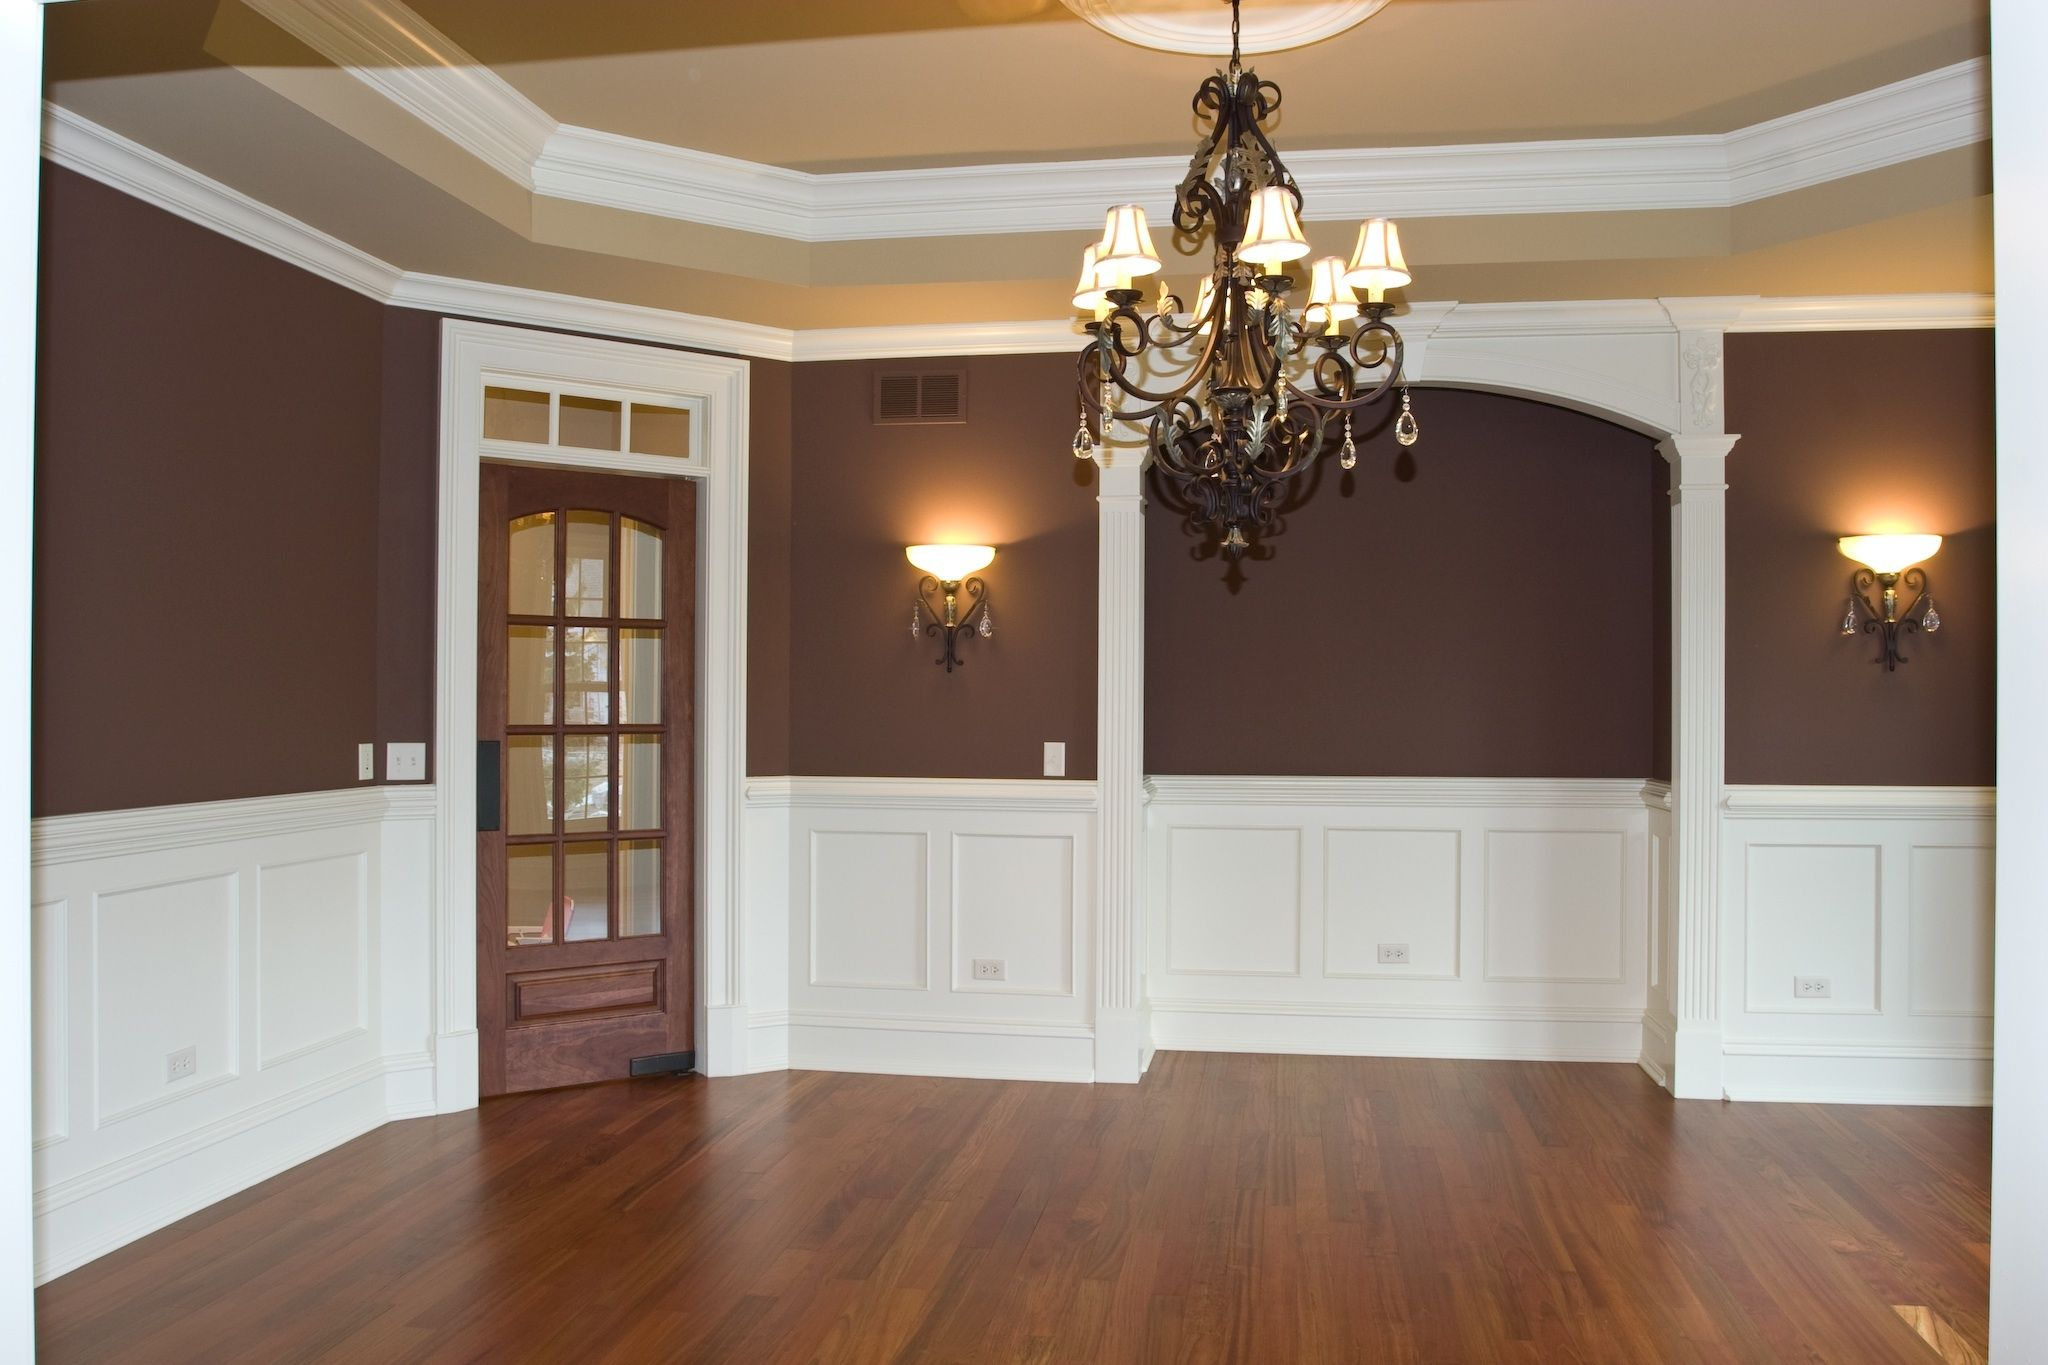 Painting the house ideas interior - Plencner Uk Is The Finest Home Decorating And Painting Service We Have The Best Painting Solutions To Make Your Home Brighten And Beautiful Our P